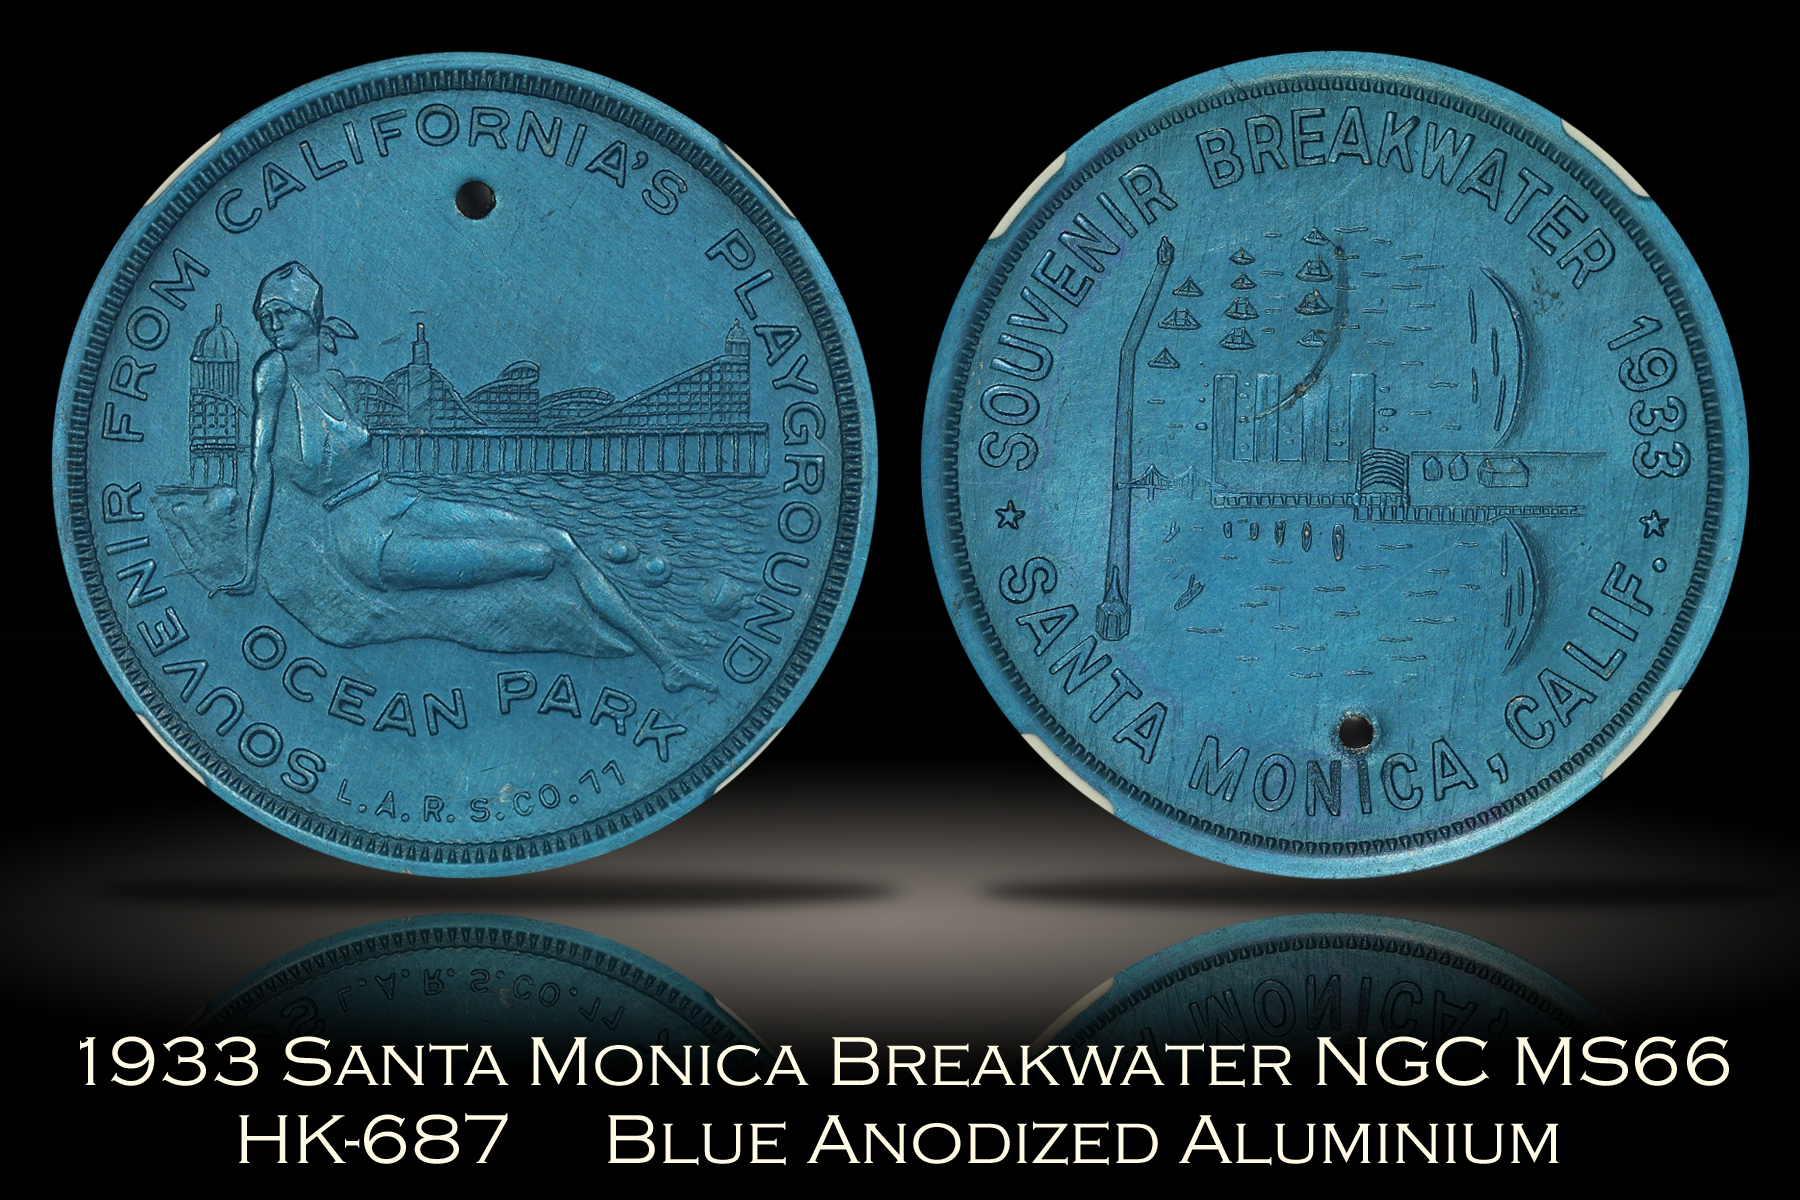 1933 Santa Monica Breakwater HK-687 Blue Anodized Aluminum NGC MS66